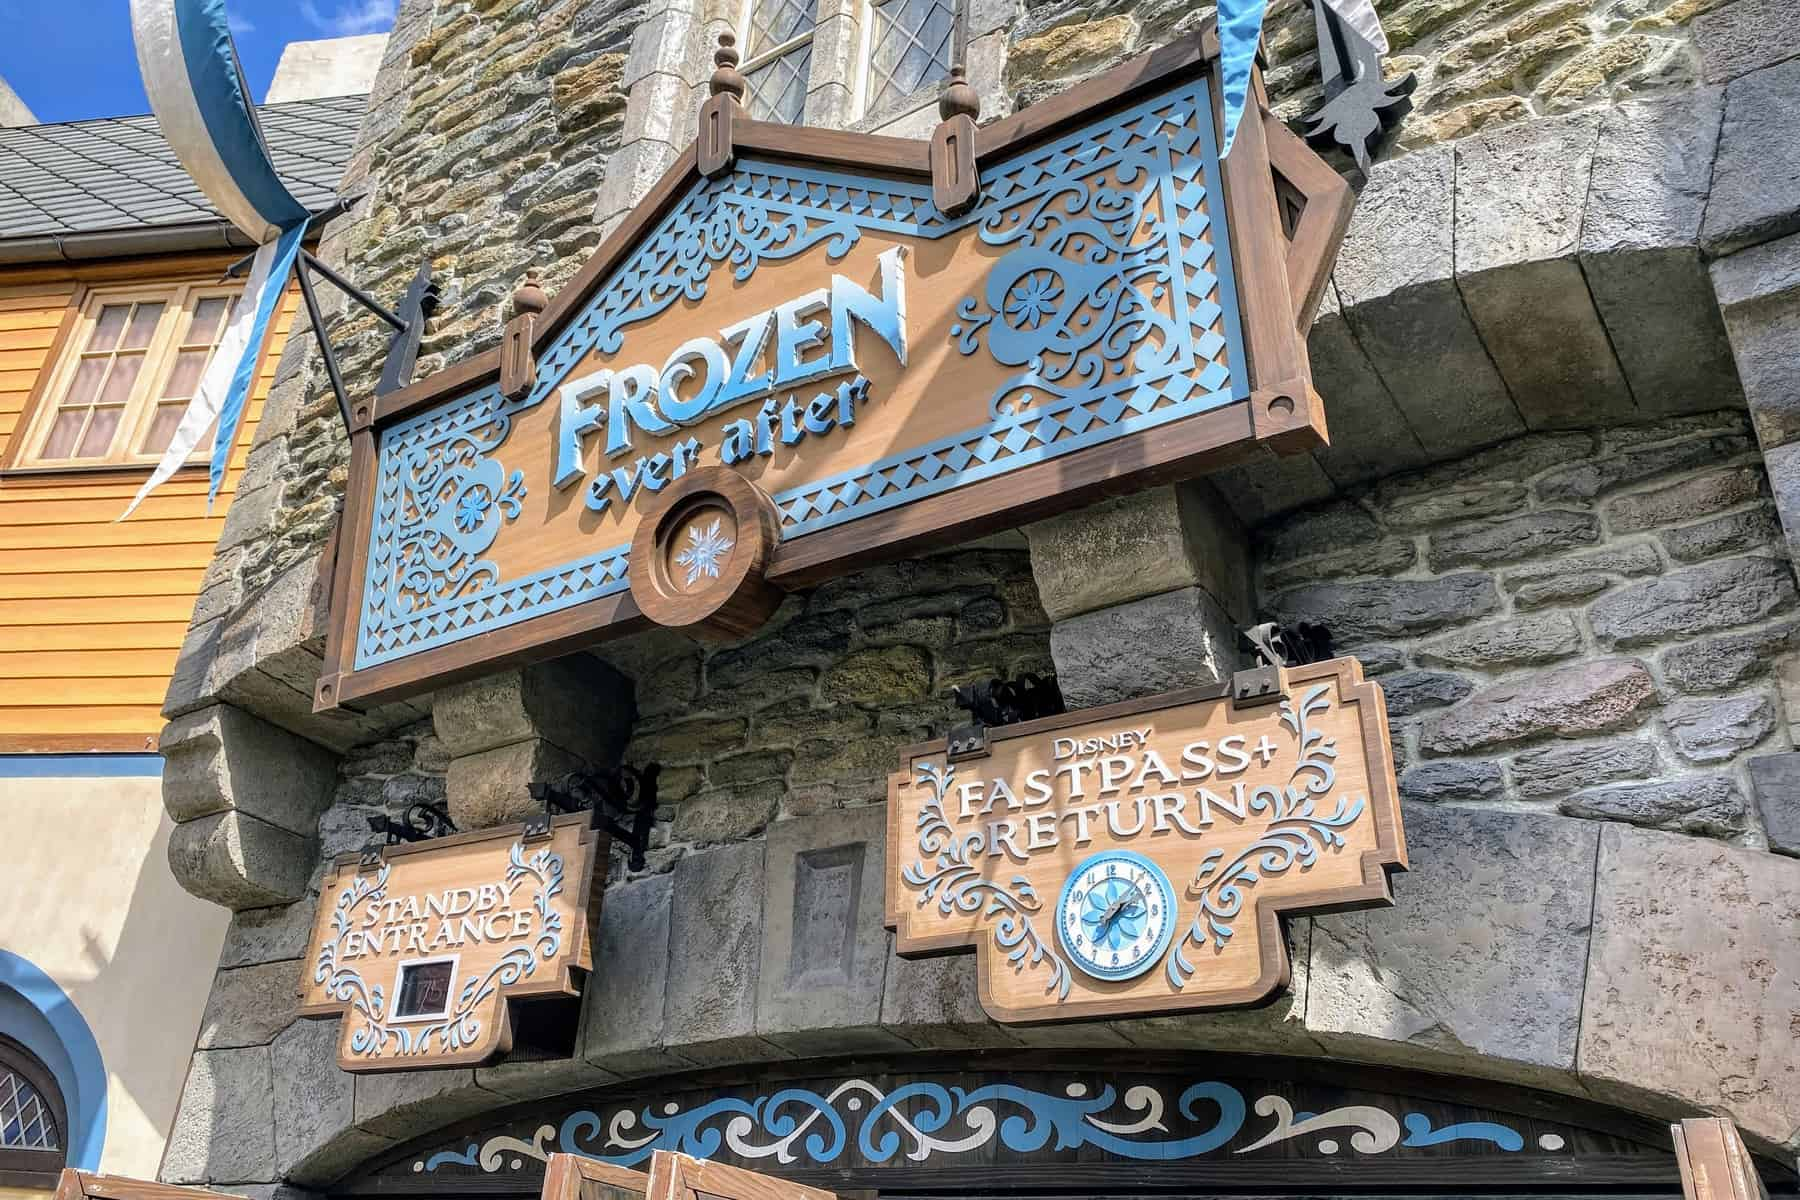 Norway – Frozen Ever After